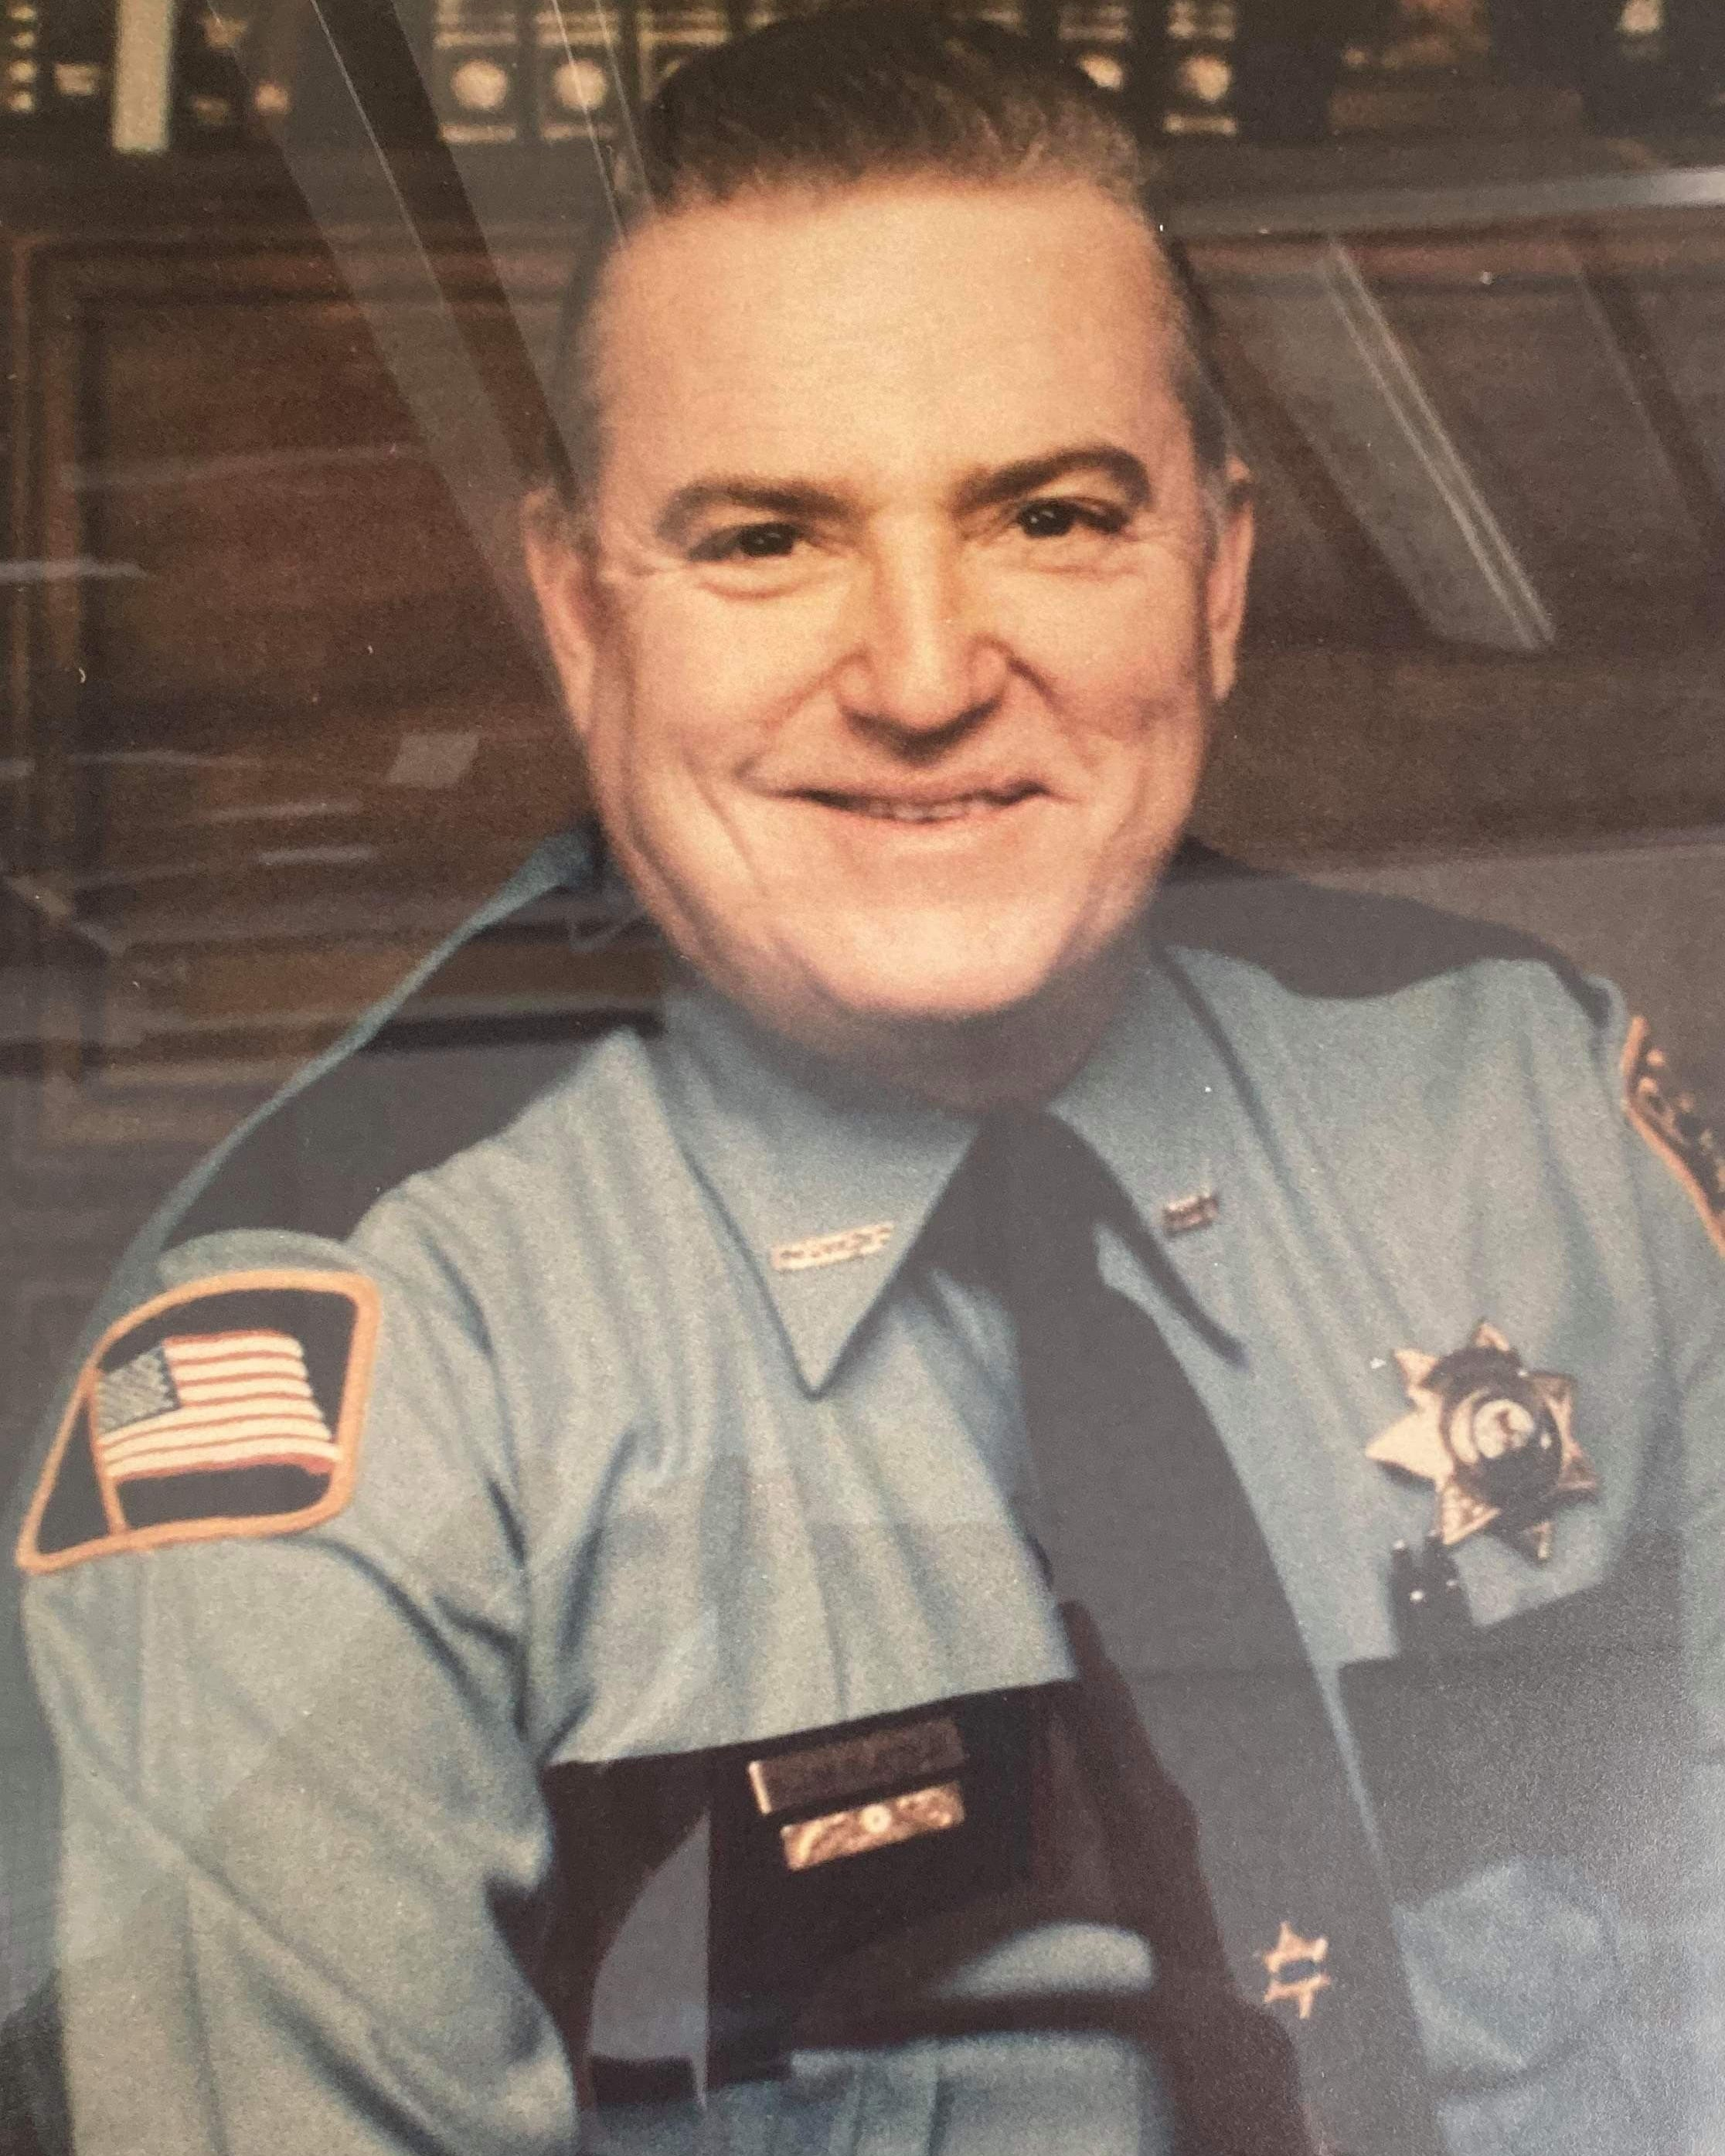 Chief of Police William Earl Leftwich   Colona Police Department, Illinois